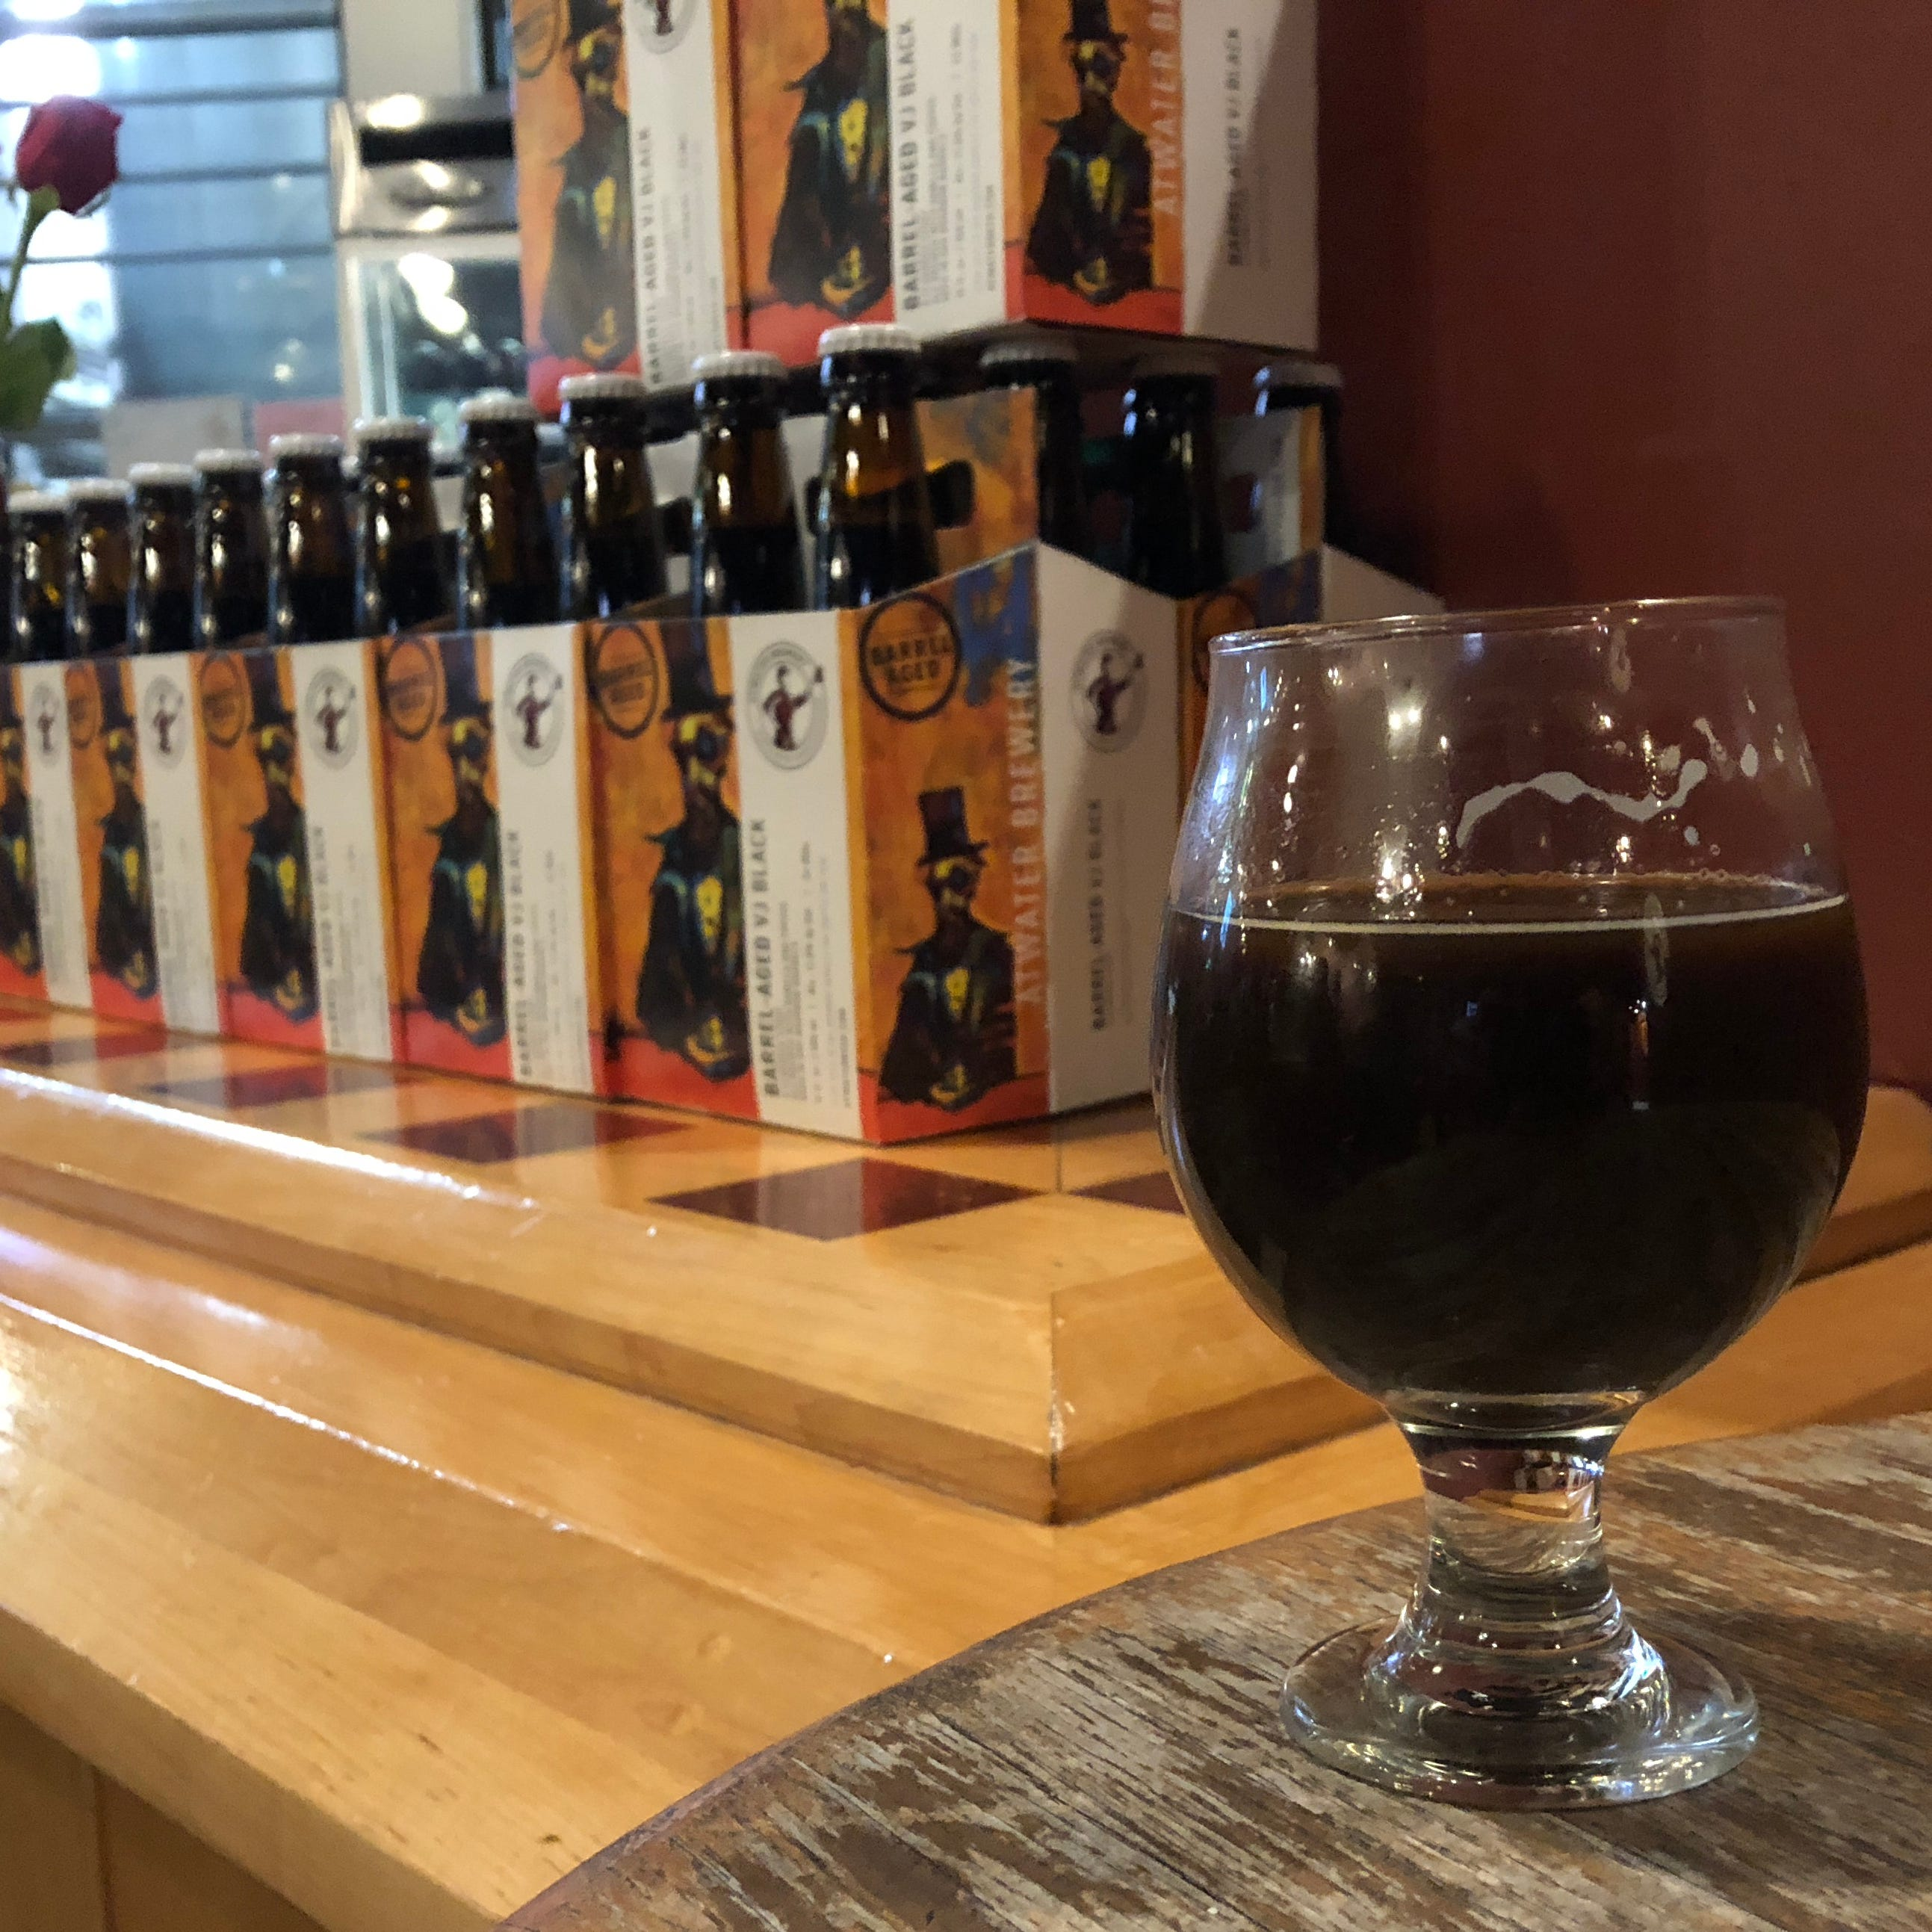 Atwater releases its first-ever barrel-aged imperial stout, BA VJ Black